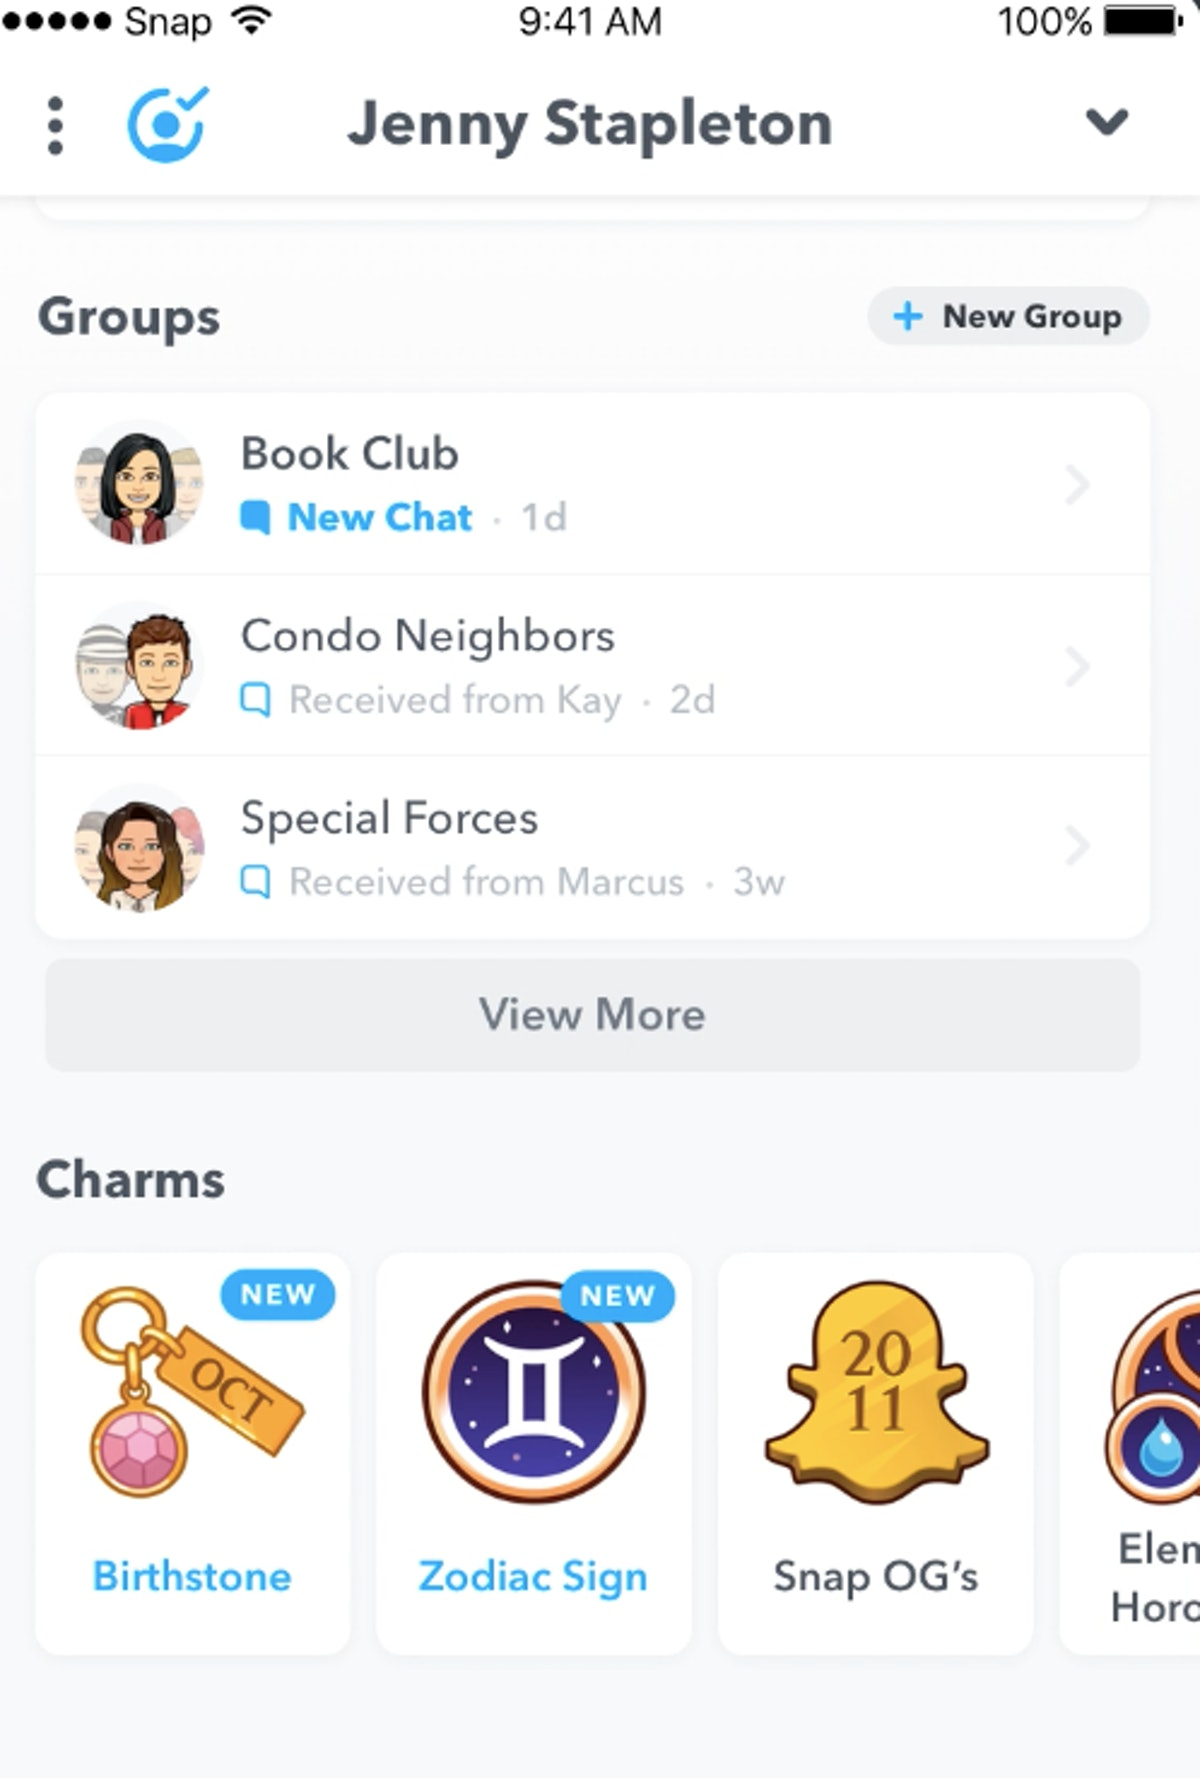 If you don't see your Snapchat Charms, here's how to get them and explore your badges.